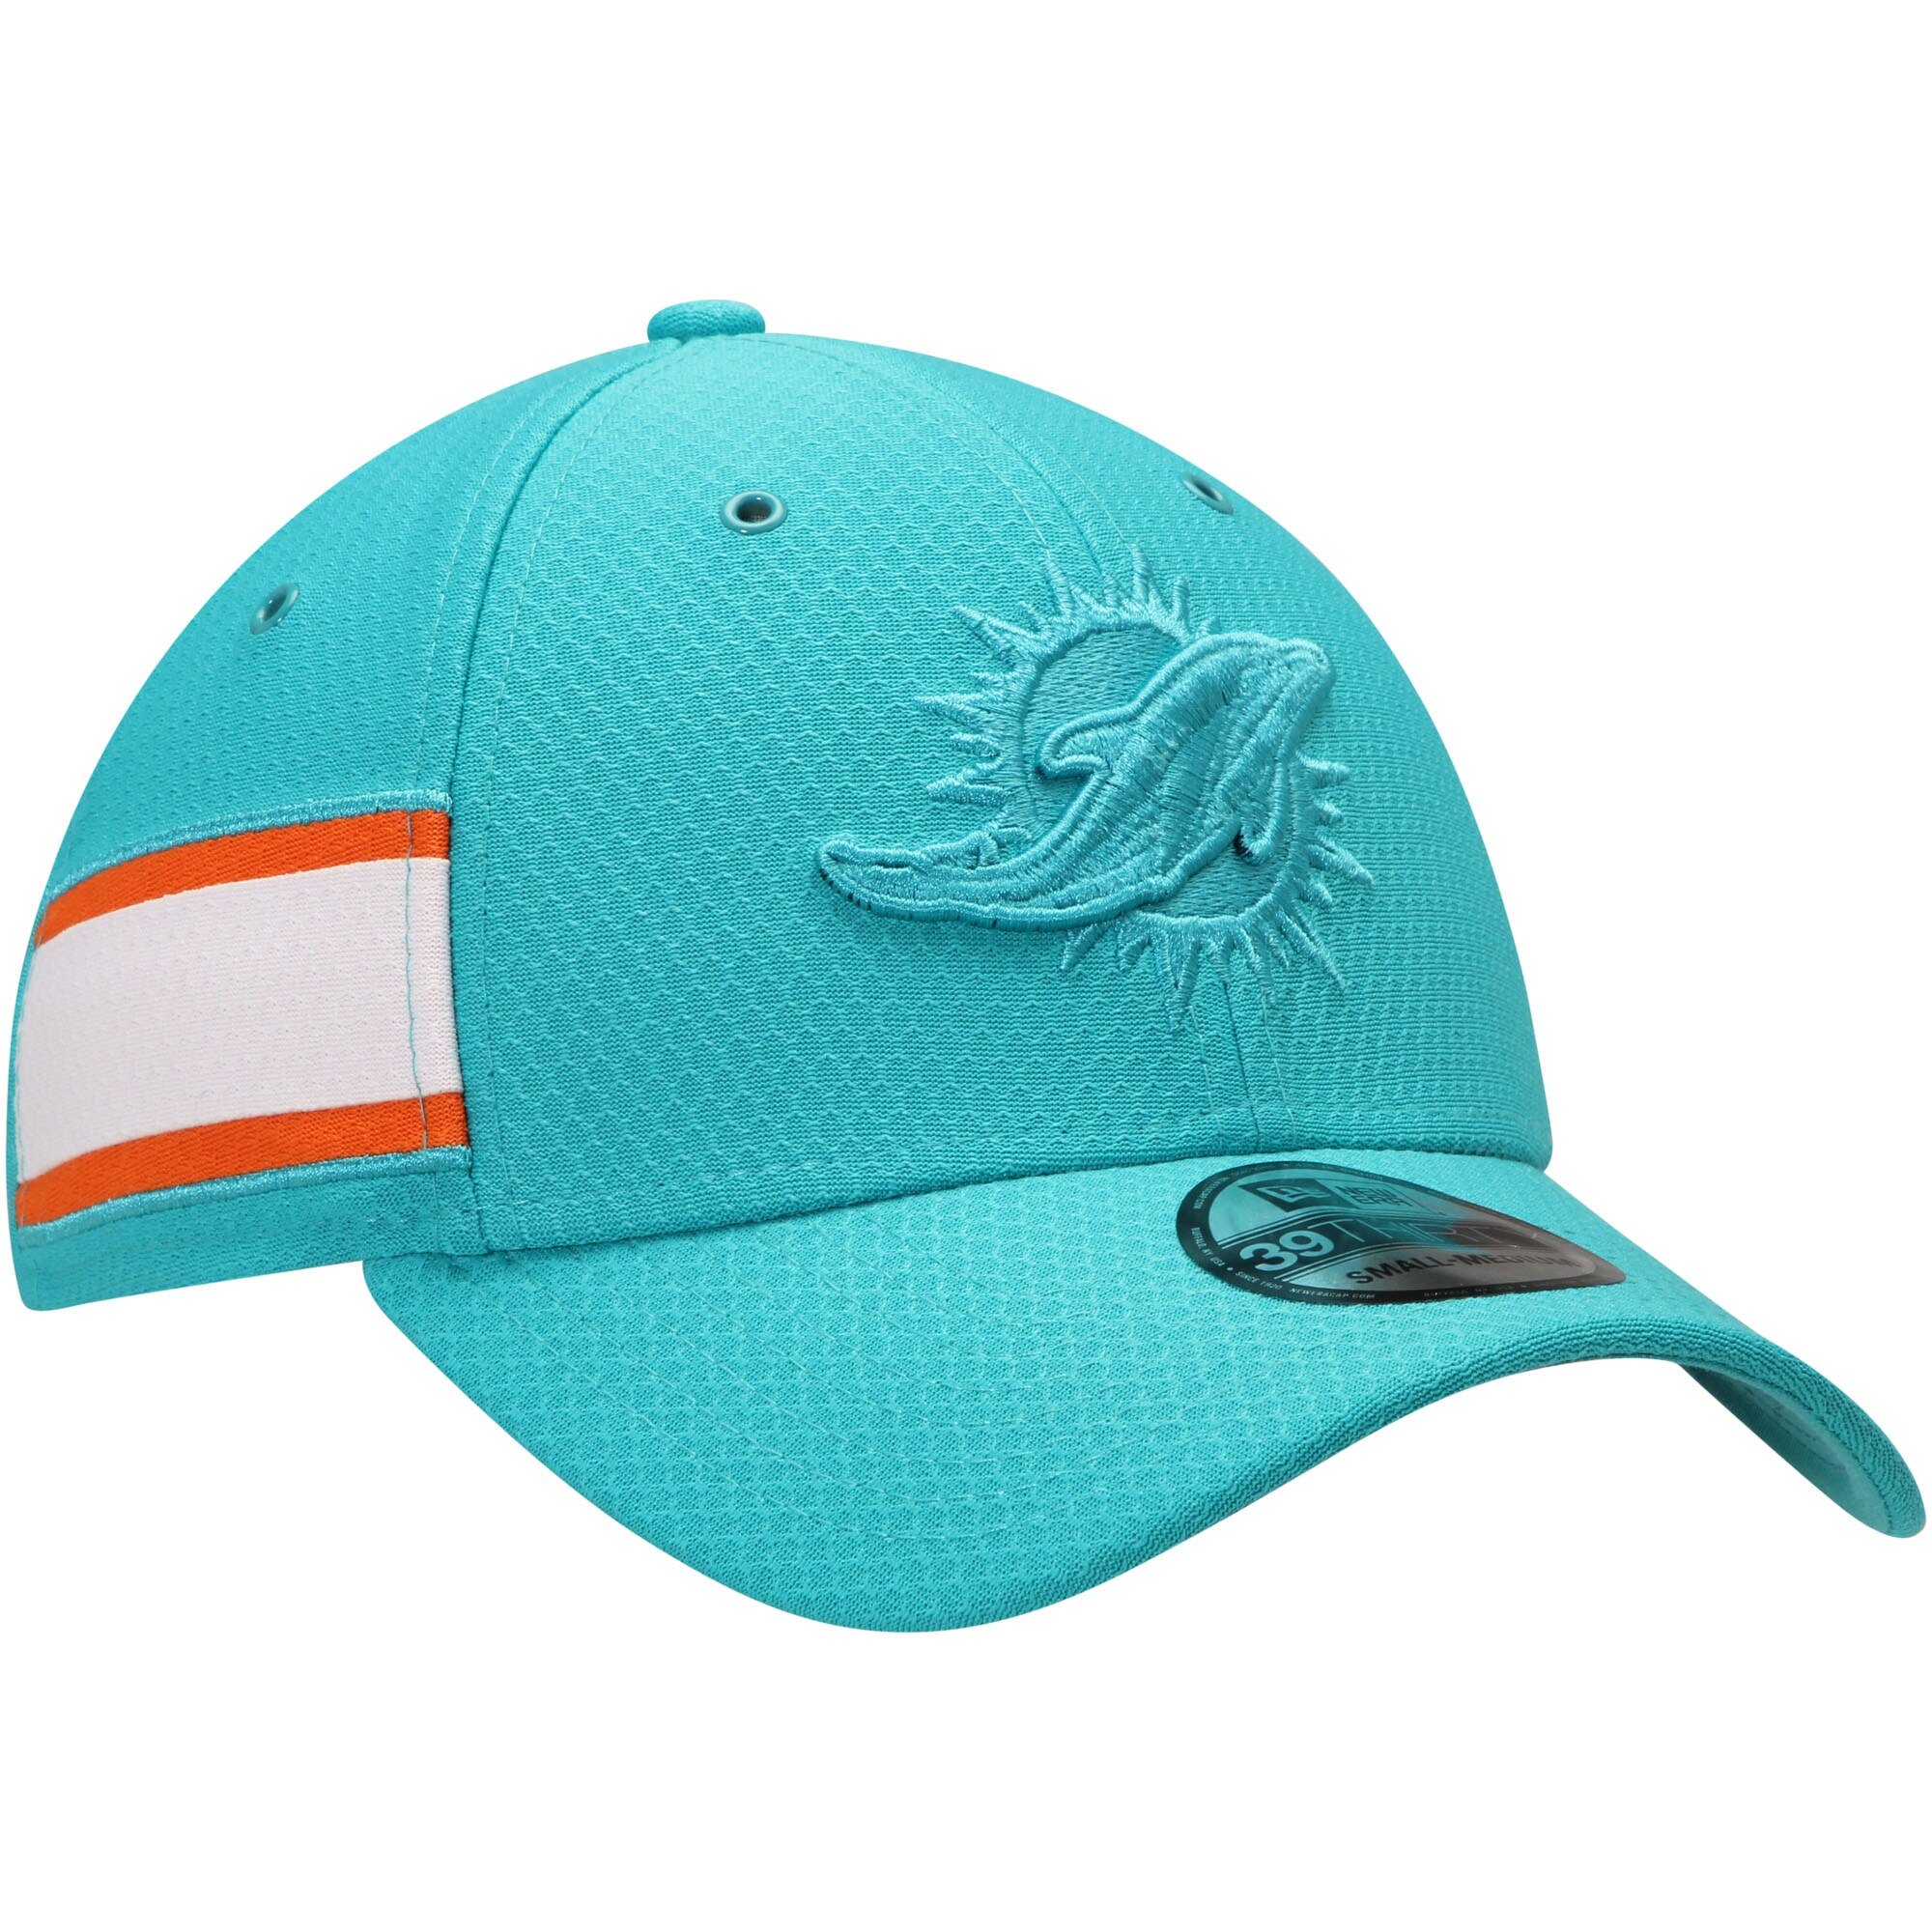 Miami Dolphins New Era Kickoff Reverse 39THIRTY Flex Hat - Aqua